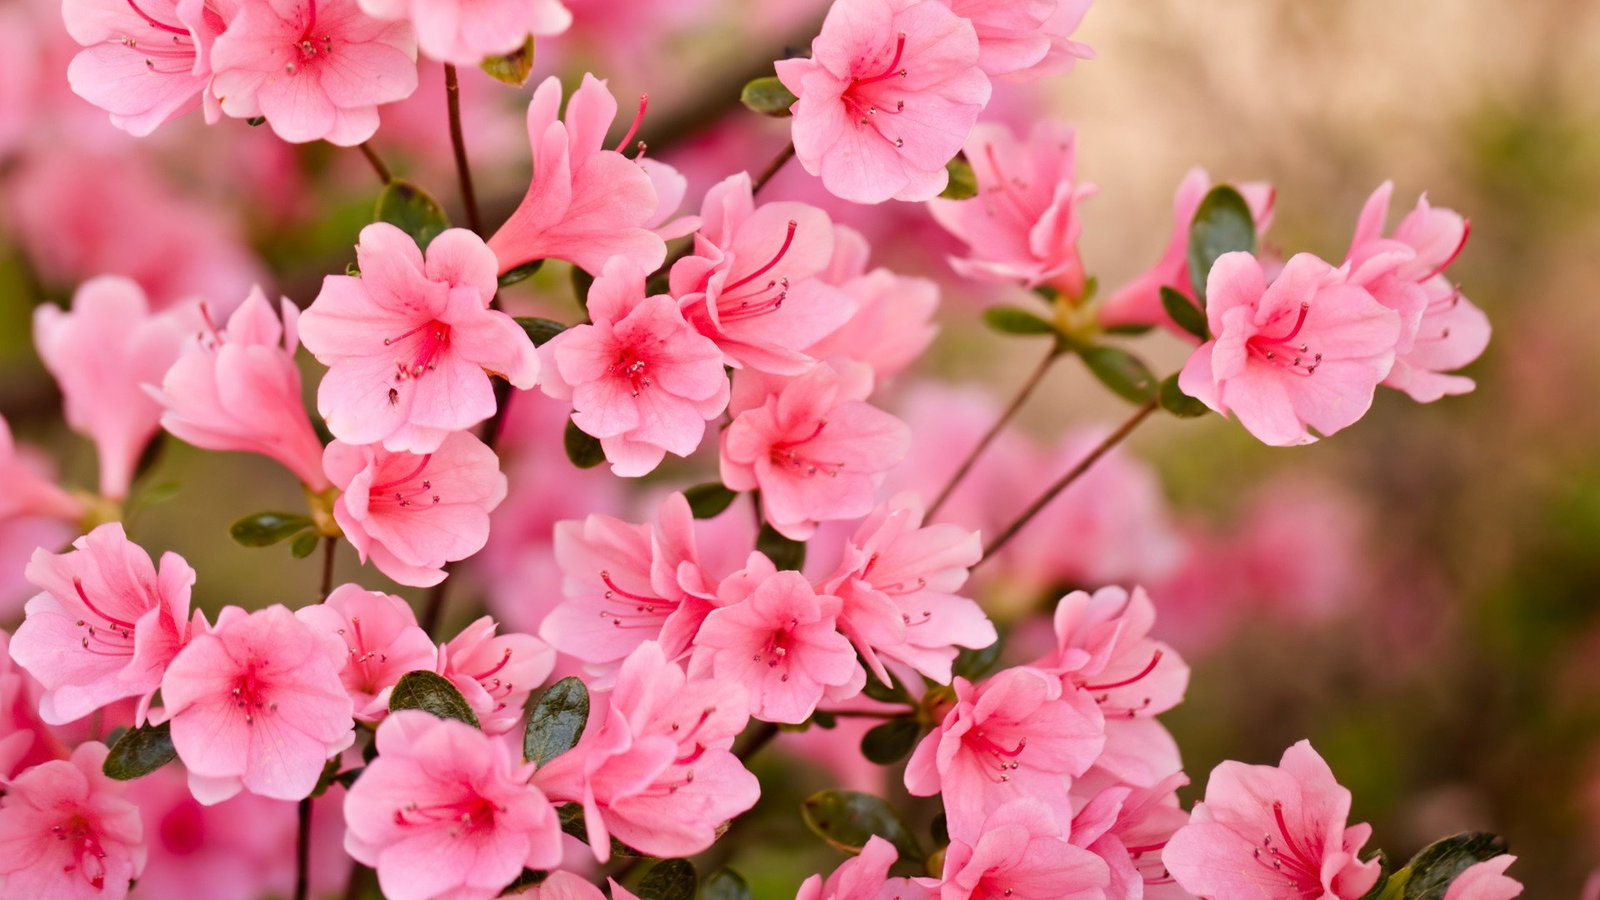 blossom-wallpaper-full-hd-333069